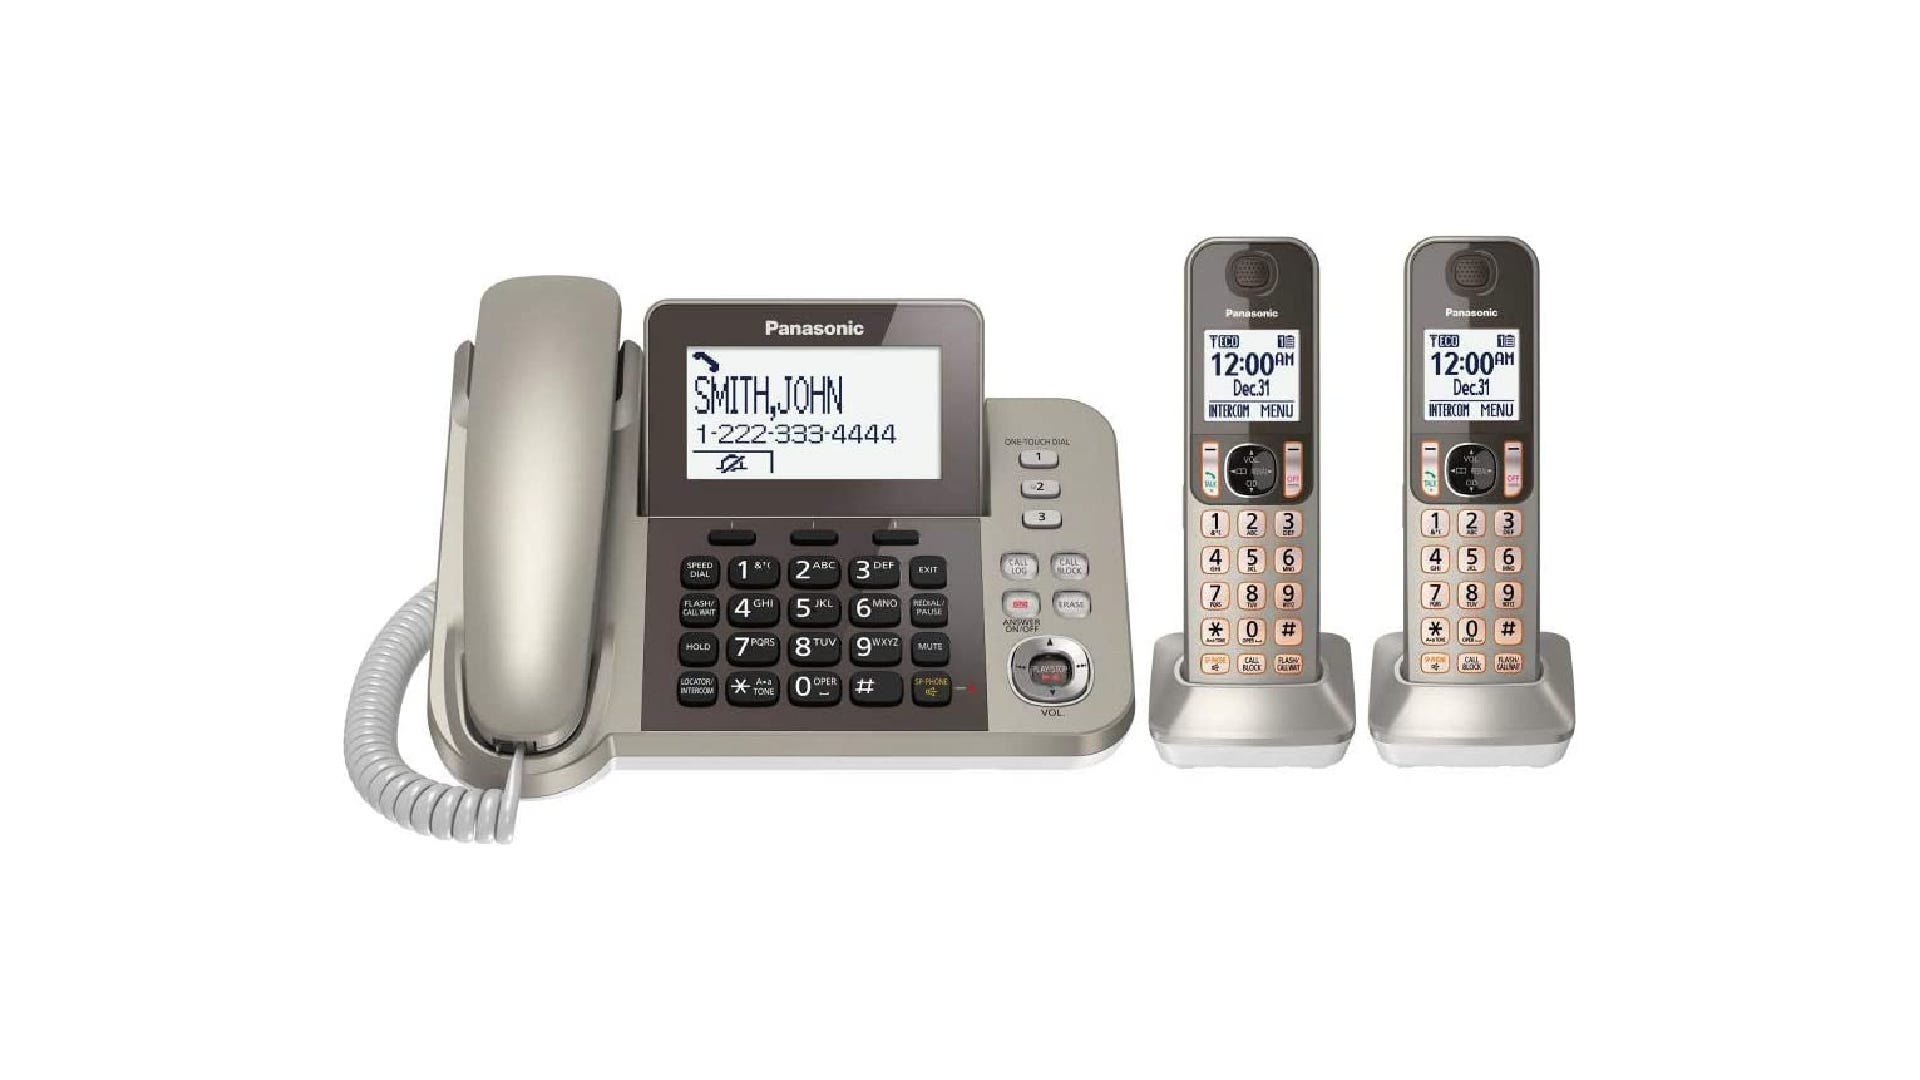 shiny light gray corded phone on a dark and light gray dial pad next to two matching cordless phones